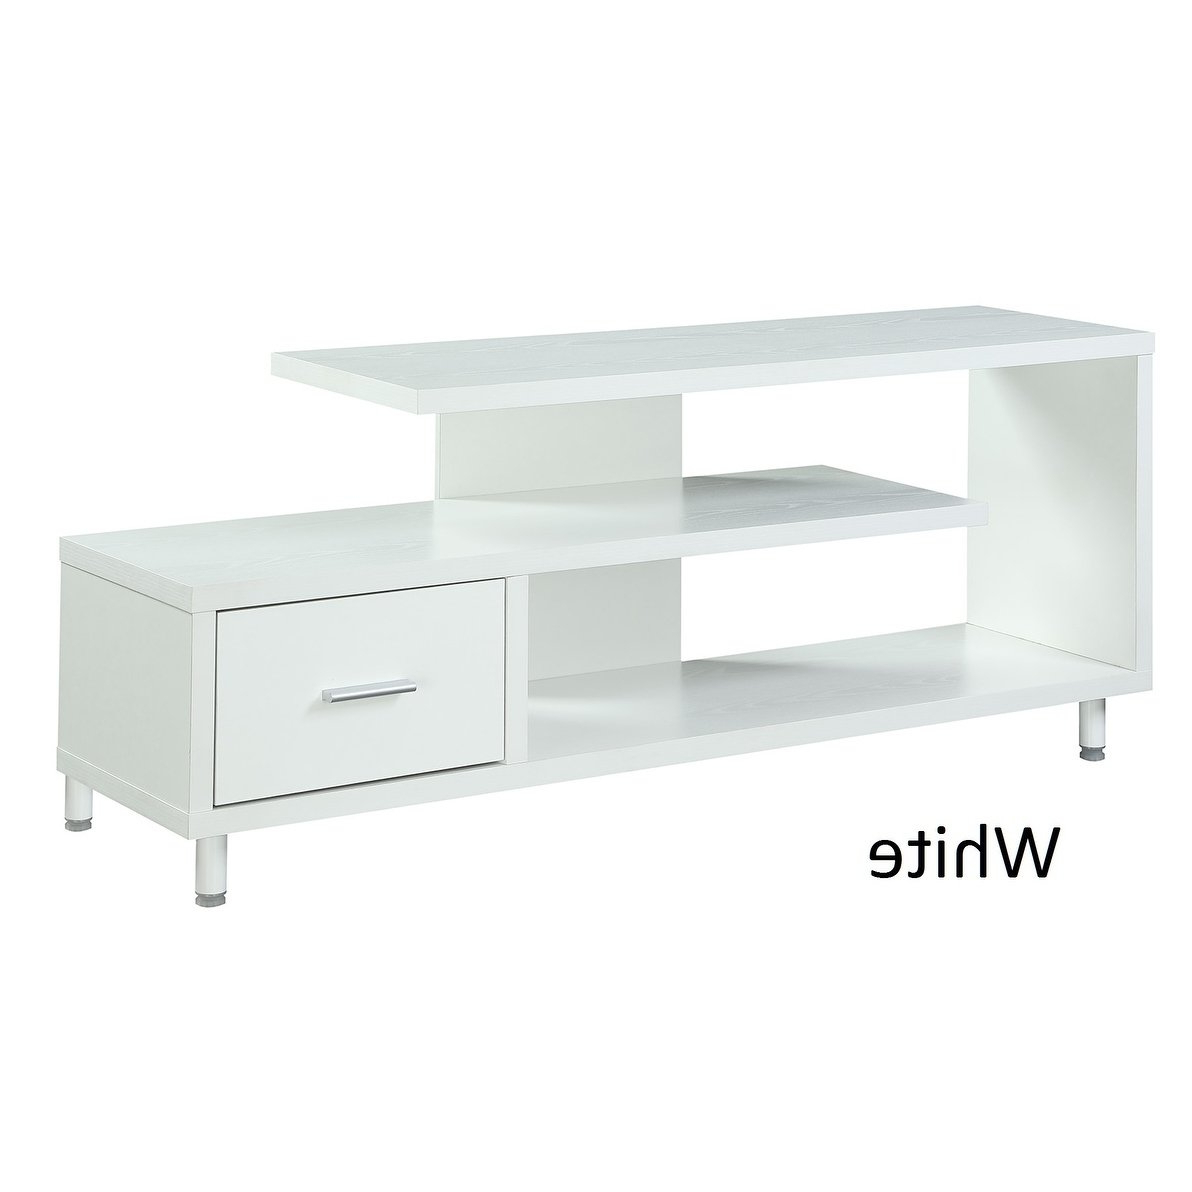 Most Popular White High Gloss Oval Tv Stand With Modern Plus And Glass Together With Regard To White Gloss Oval Tv Stands (View 11 of 20)